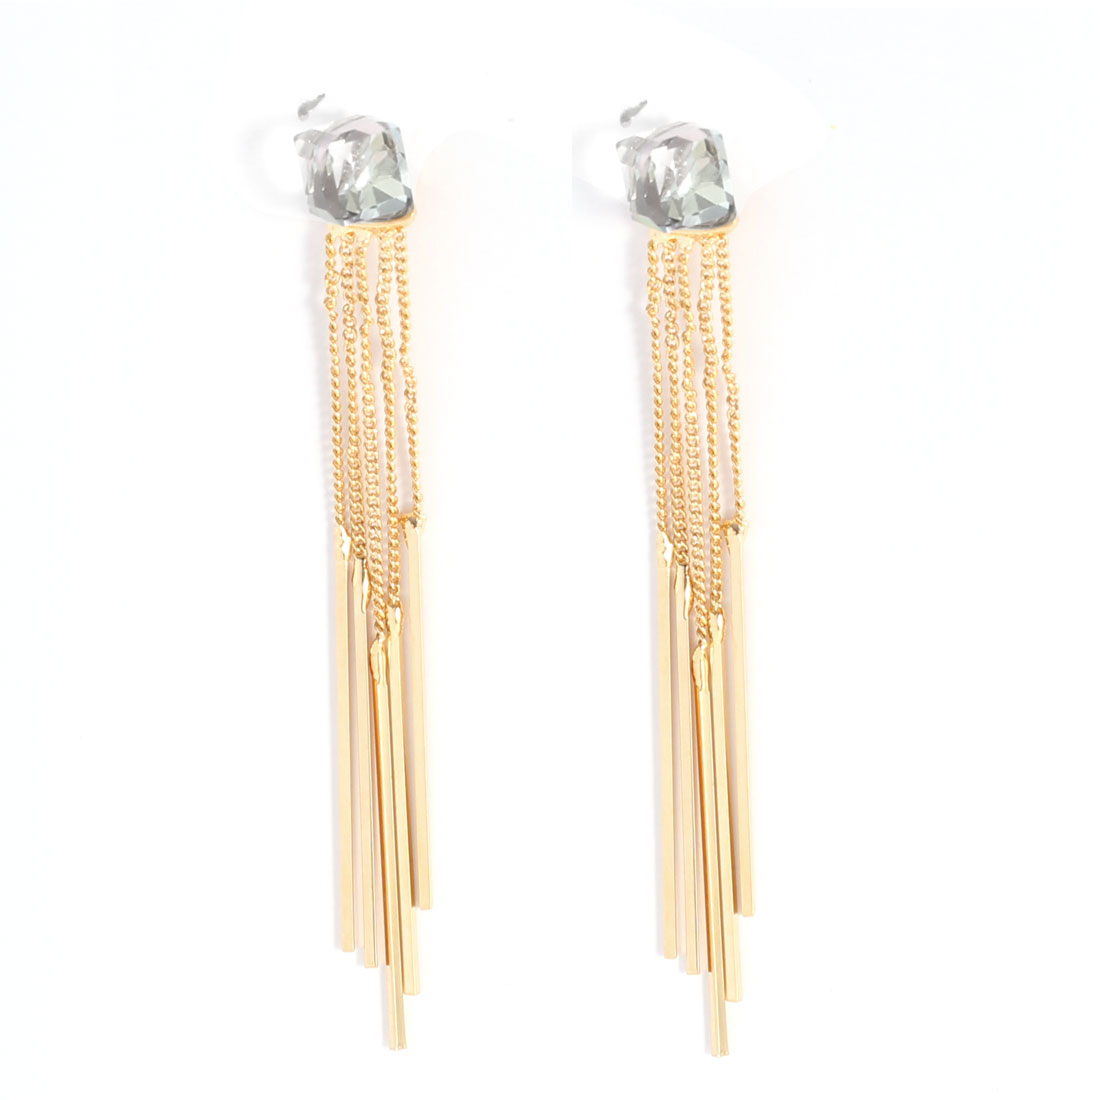 Gold Tone Linear Pendant Rhinestone Embellished Stud Earrings